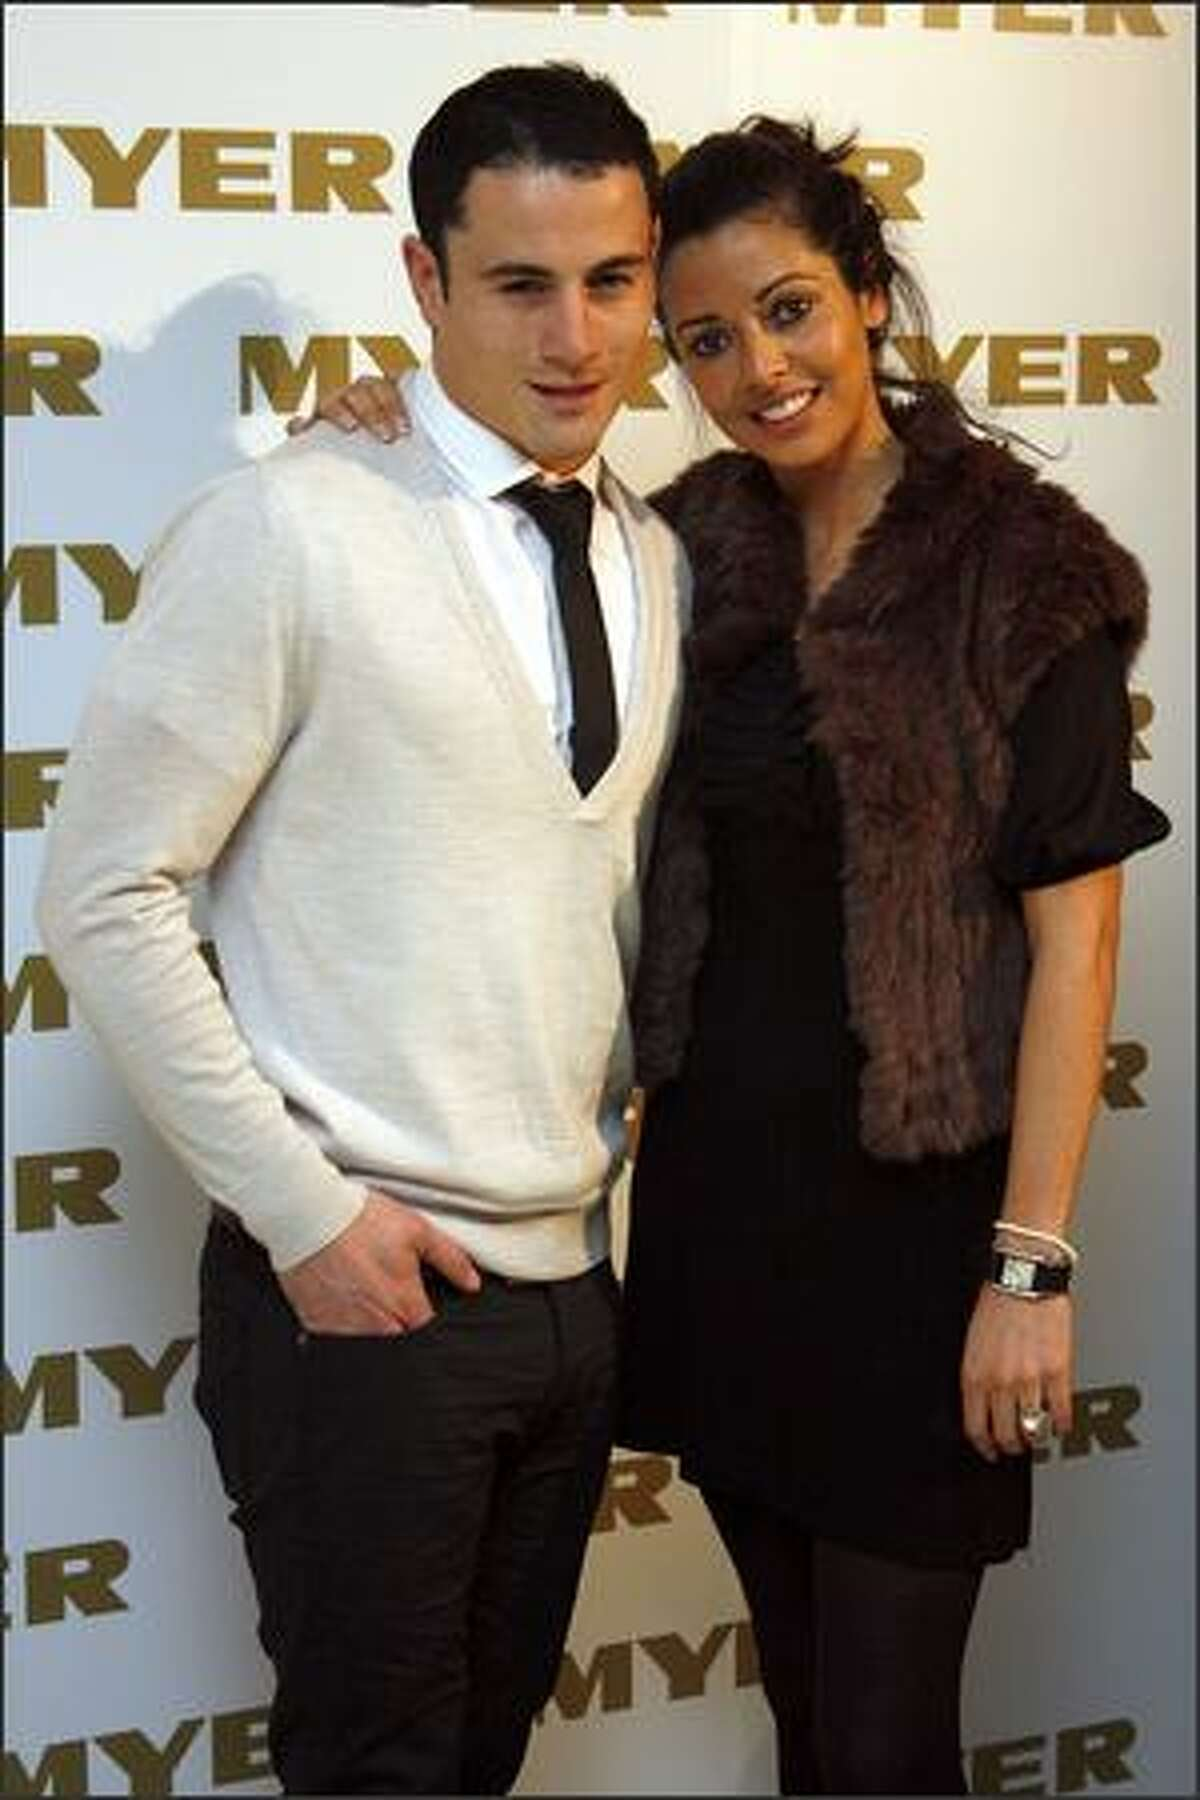 Paul Licuria and Barbara Hawley-Licuria arrive for the official cocktail launch party for the Myer Spring Racing fashion range at the The Deck, Prince Hotel on Wednesday in Melbourne, Australia.